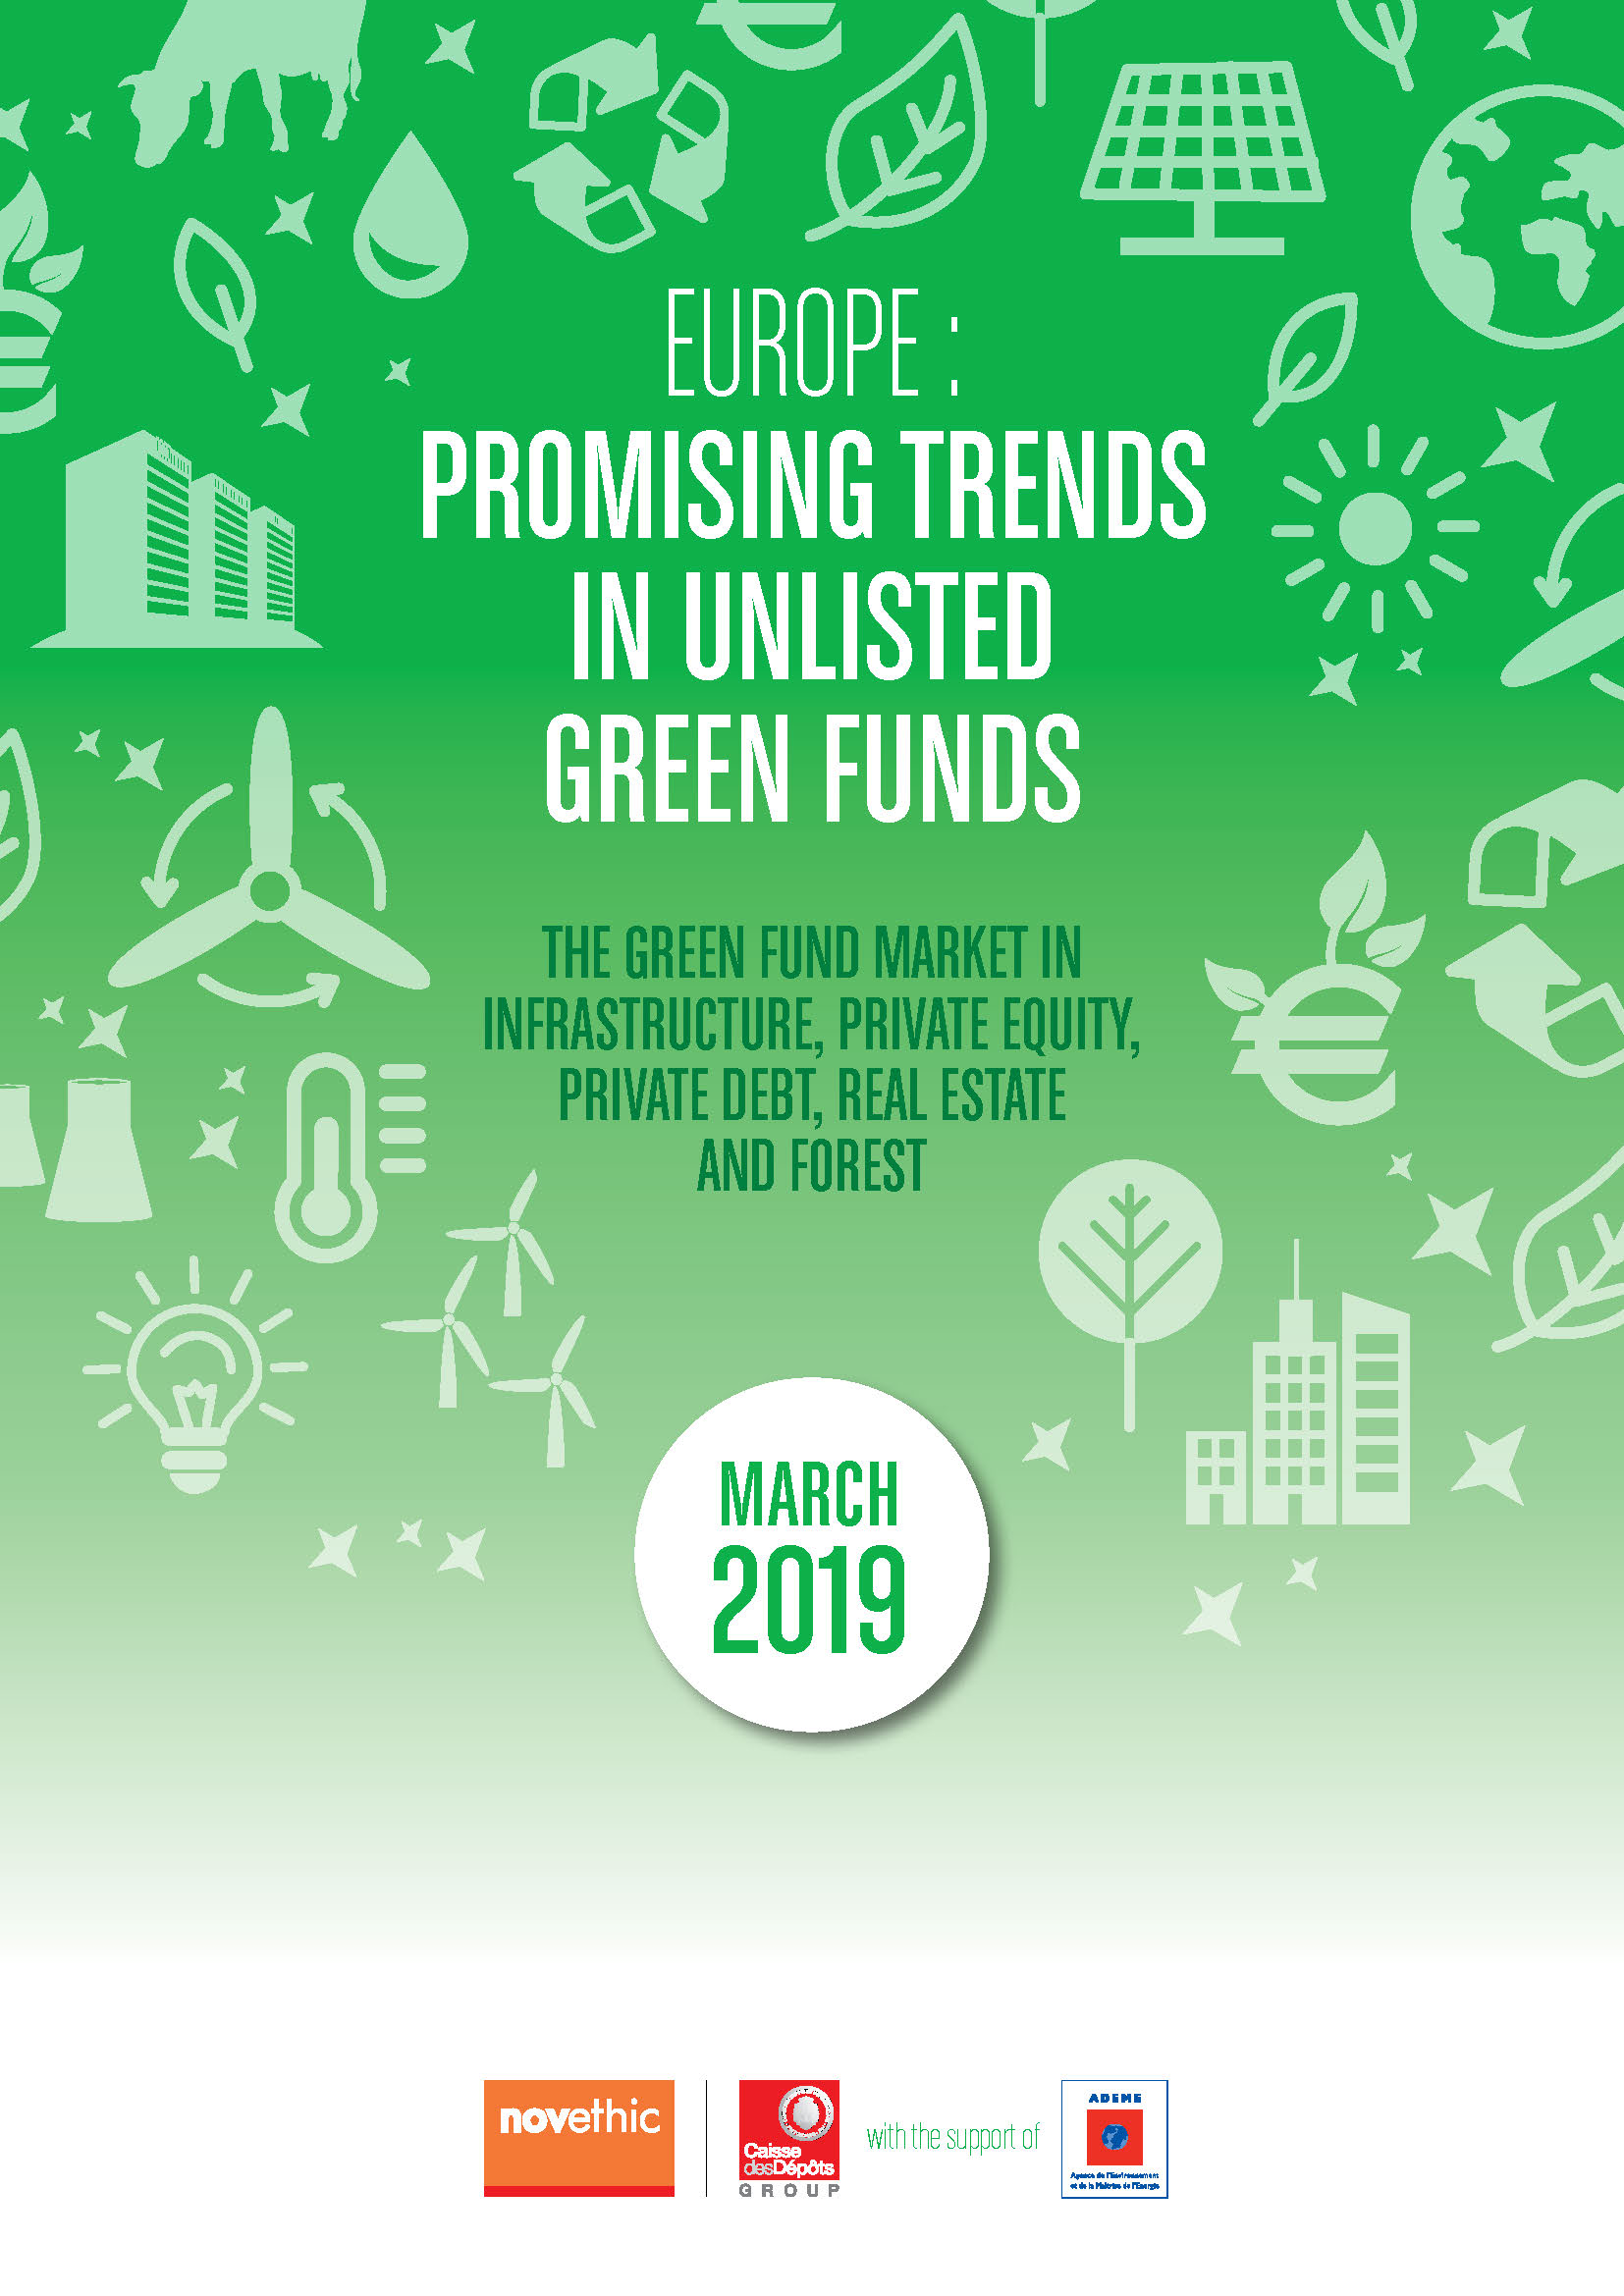 Pages from Novethic-Europe_Promising_Trends_in_Unlisted_Green_Funds_2019